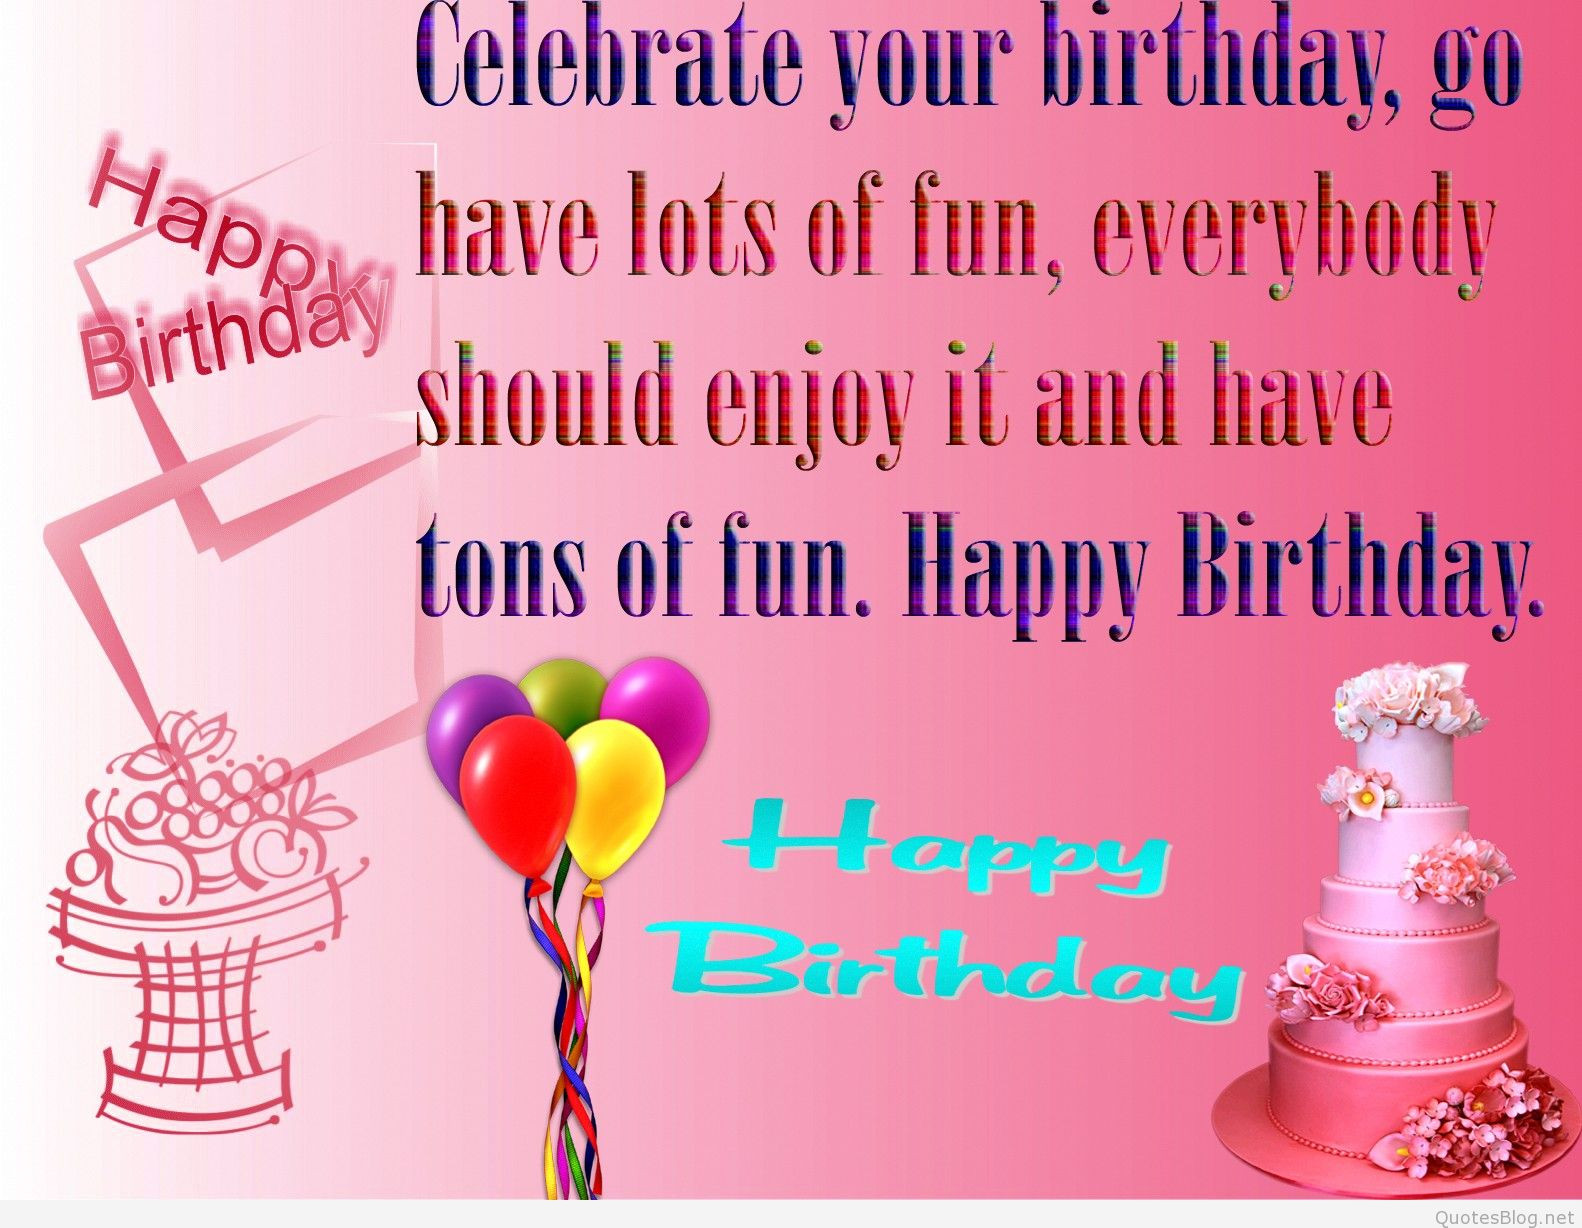 Best ideas about Birthday Wishes For Him . Save or Pin Happy Birthday Wishes for the Day Now.